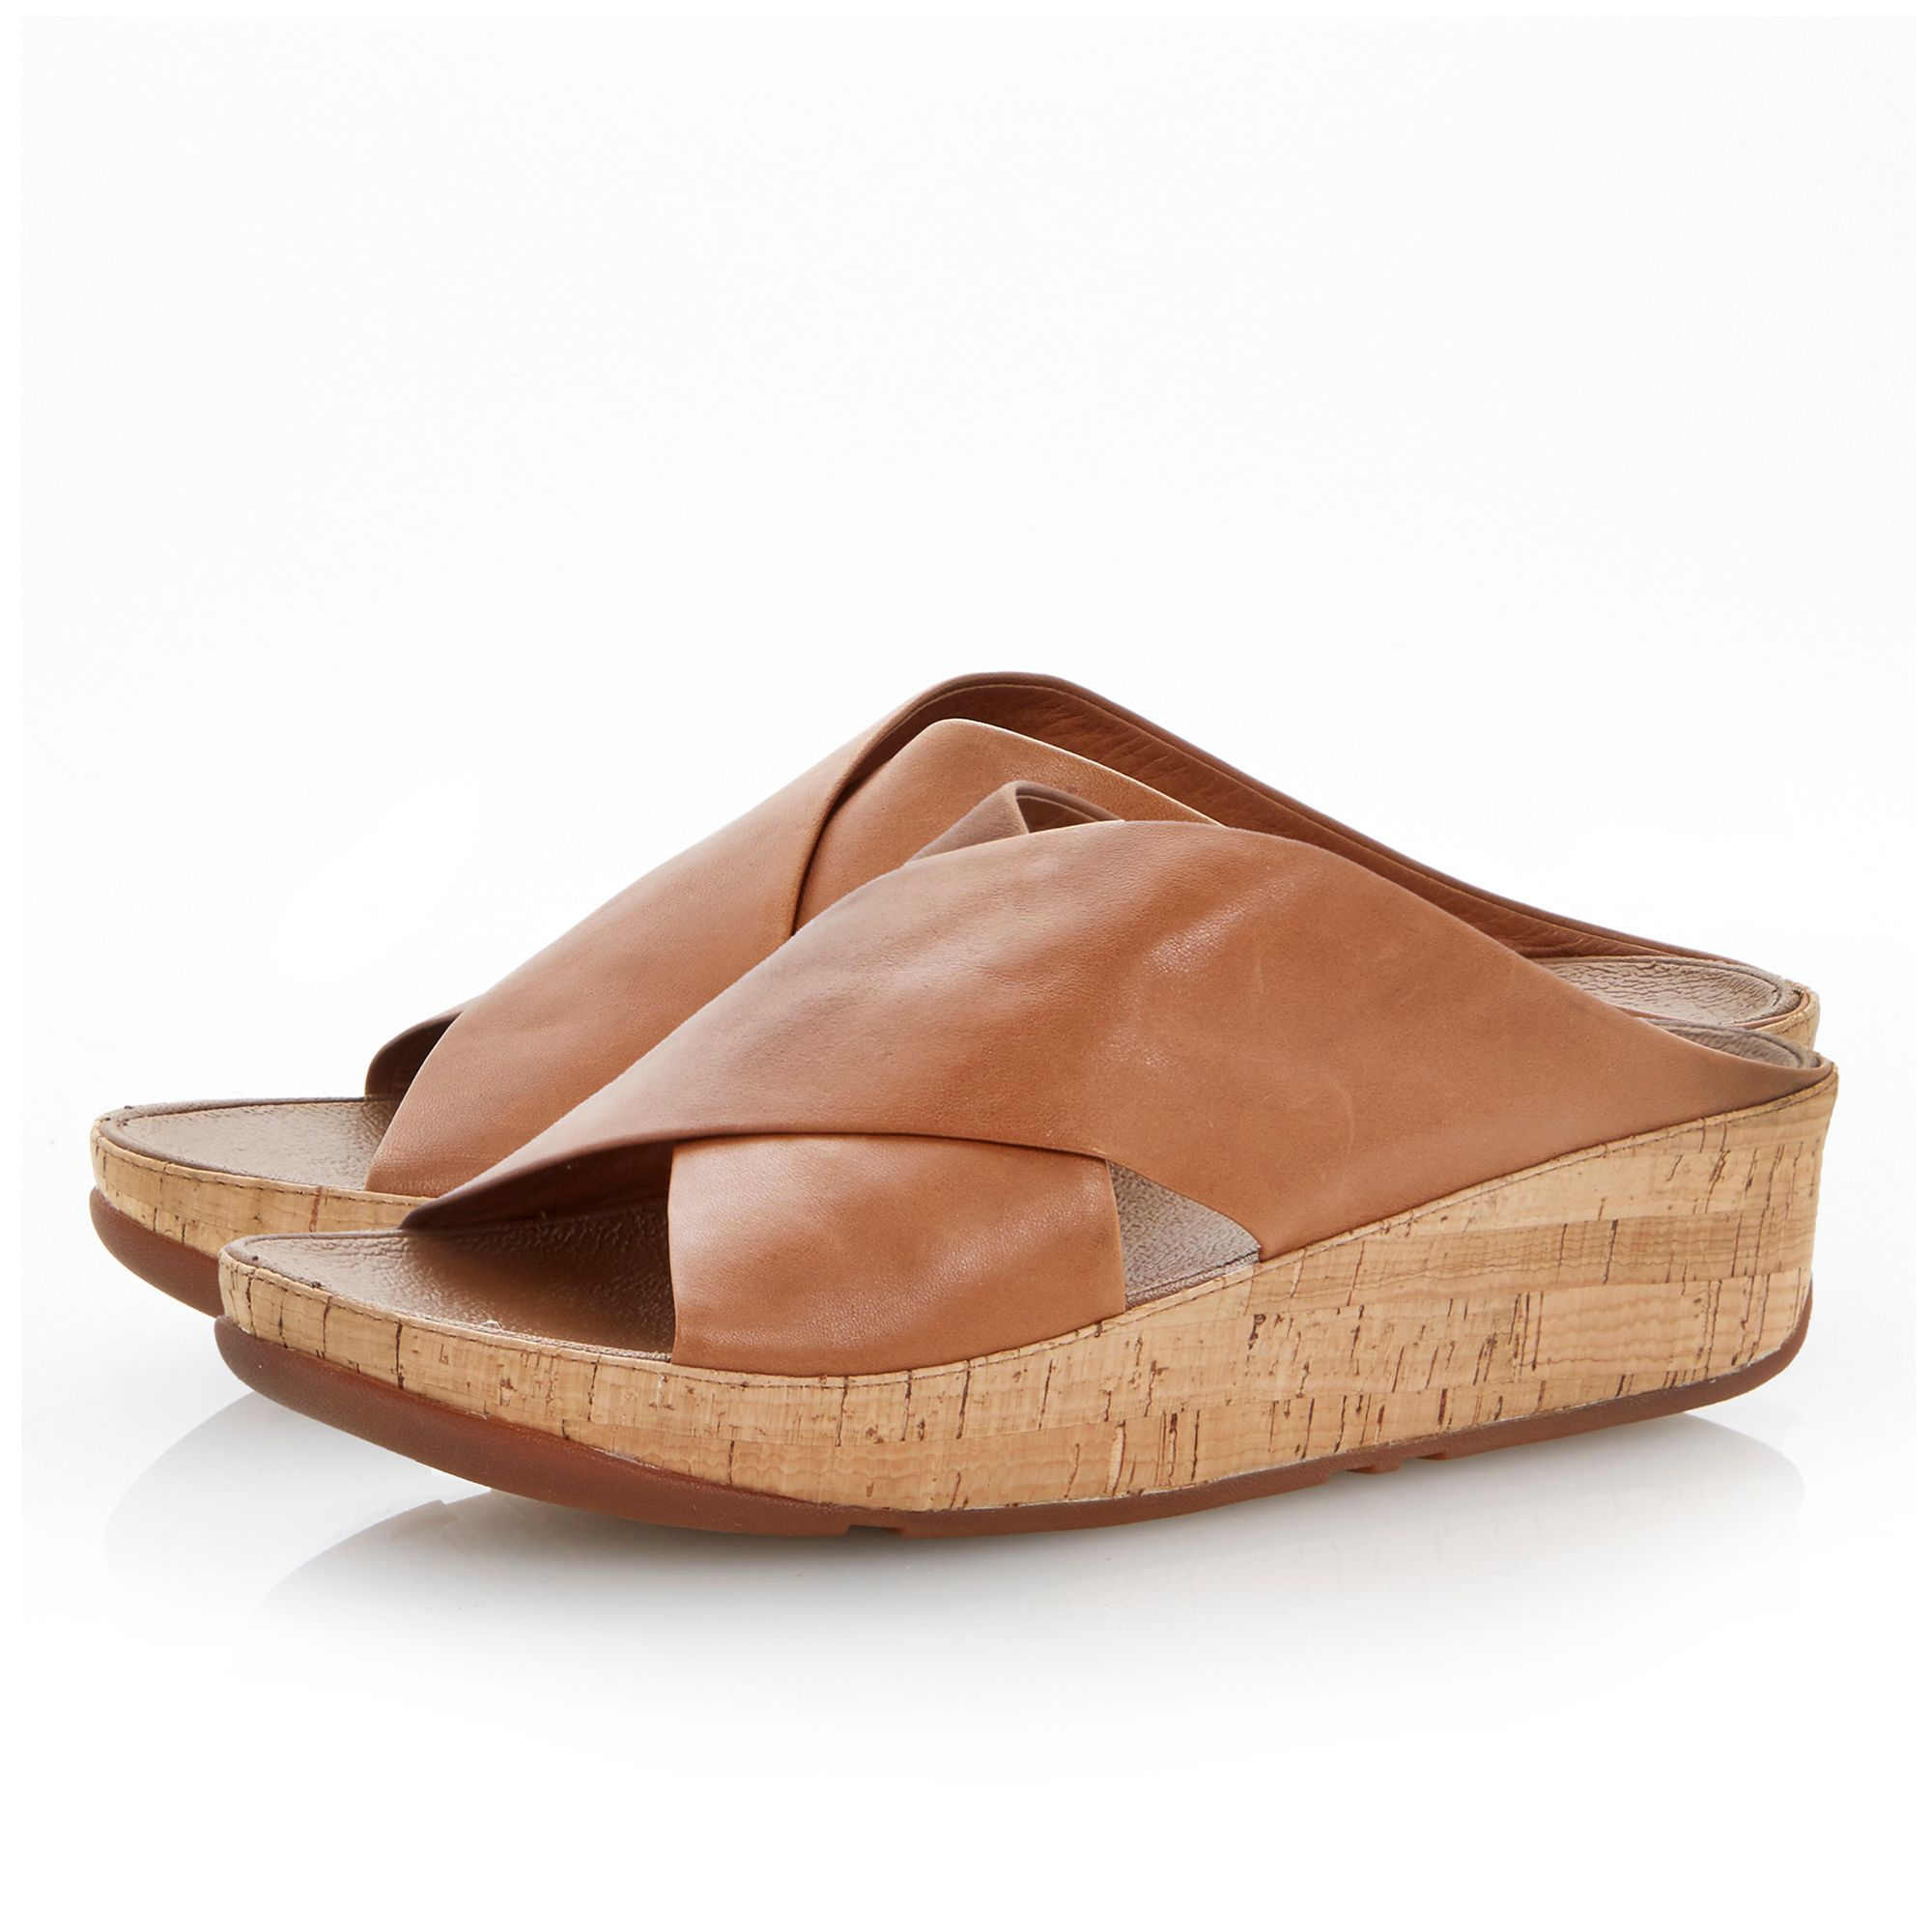 Kys leather round toe crossover wedge sandals